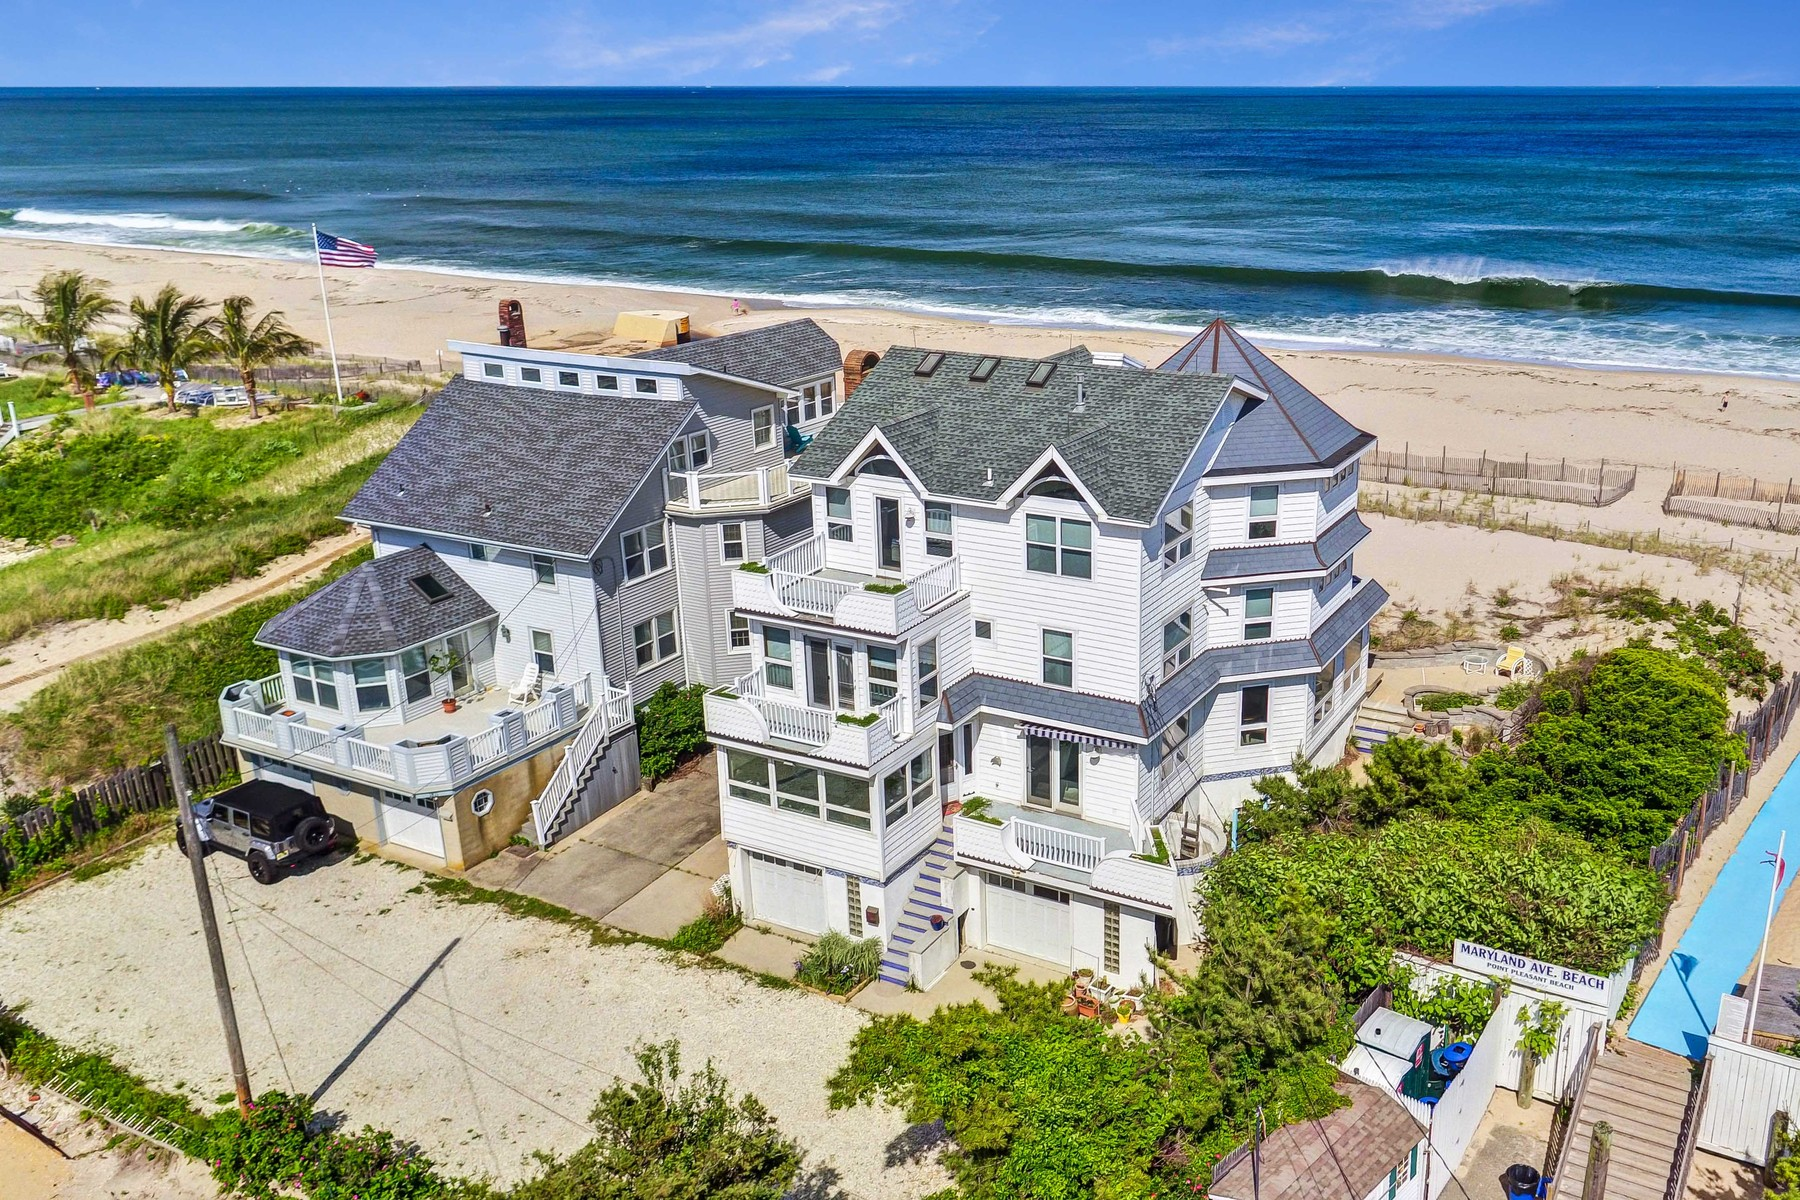 Casa Unifamiliar por un Venta en Oceanfront Opportunity 1 Maryland Ave Point Pleasant Beach, Nueva Jersey 08742 Estados Unidos